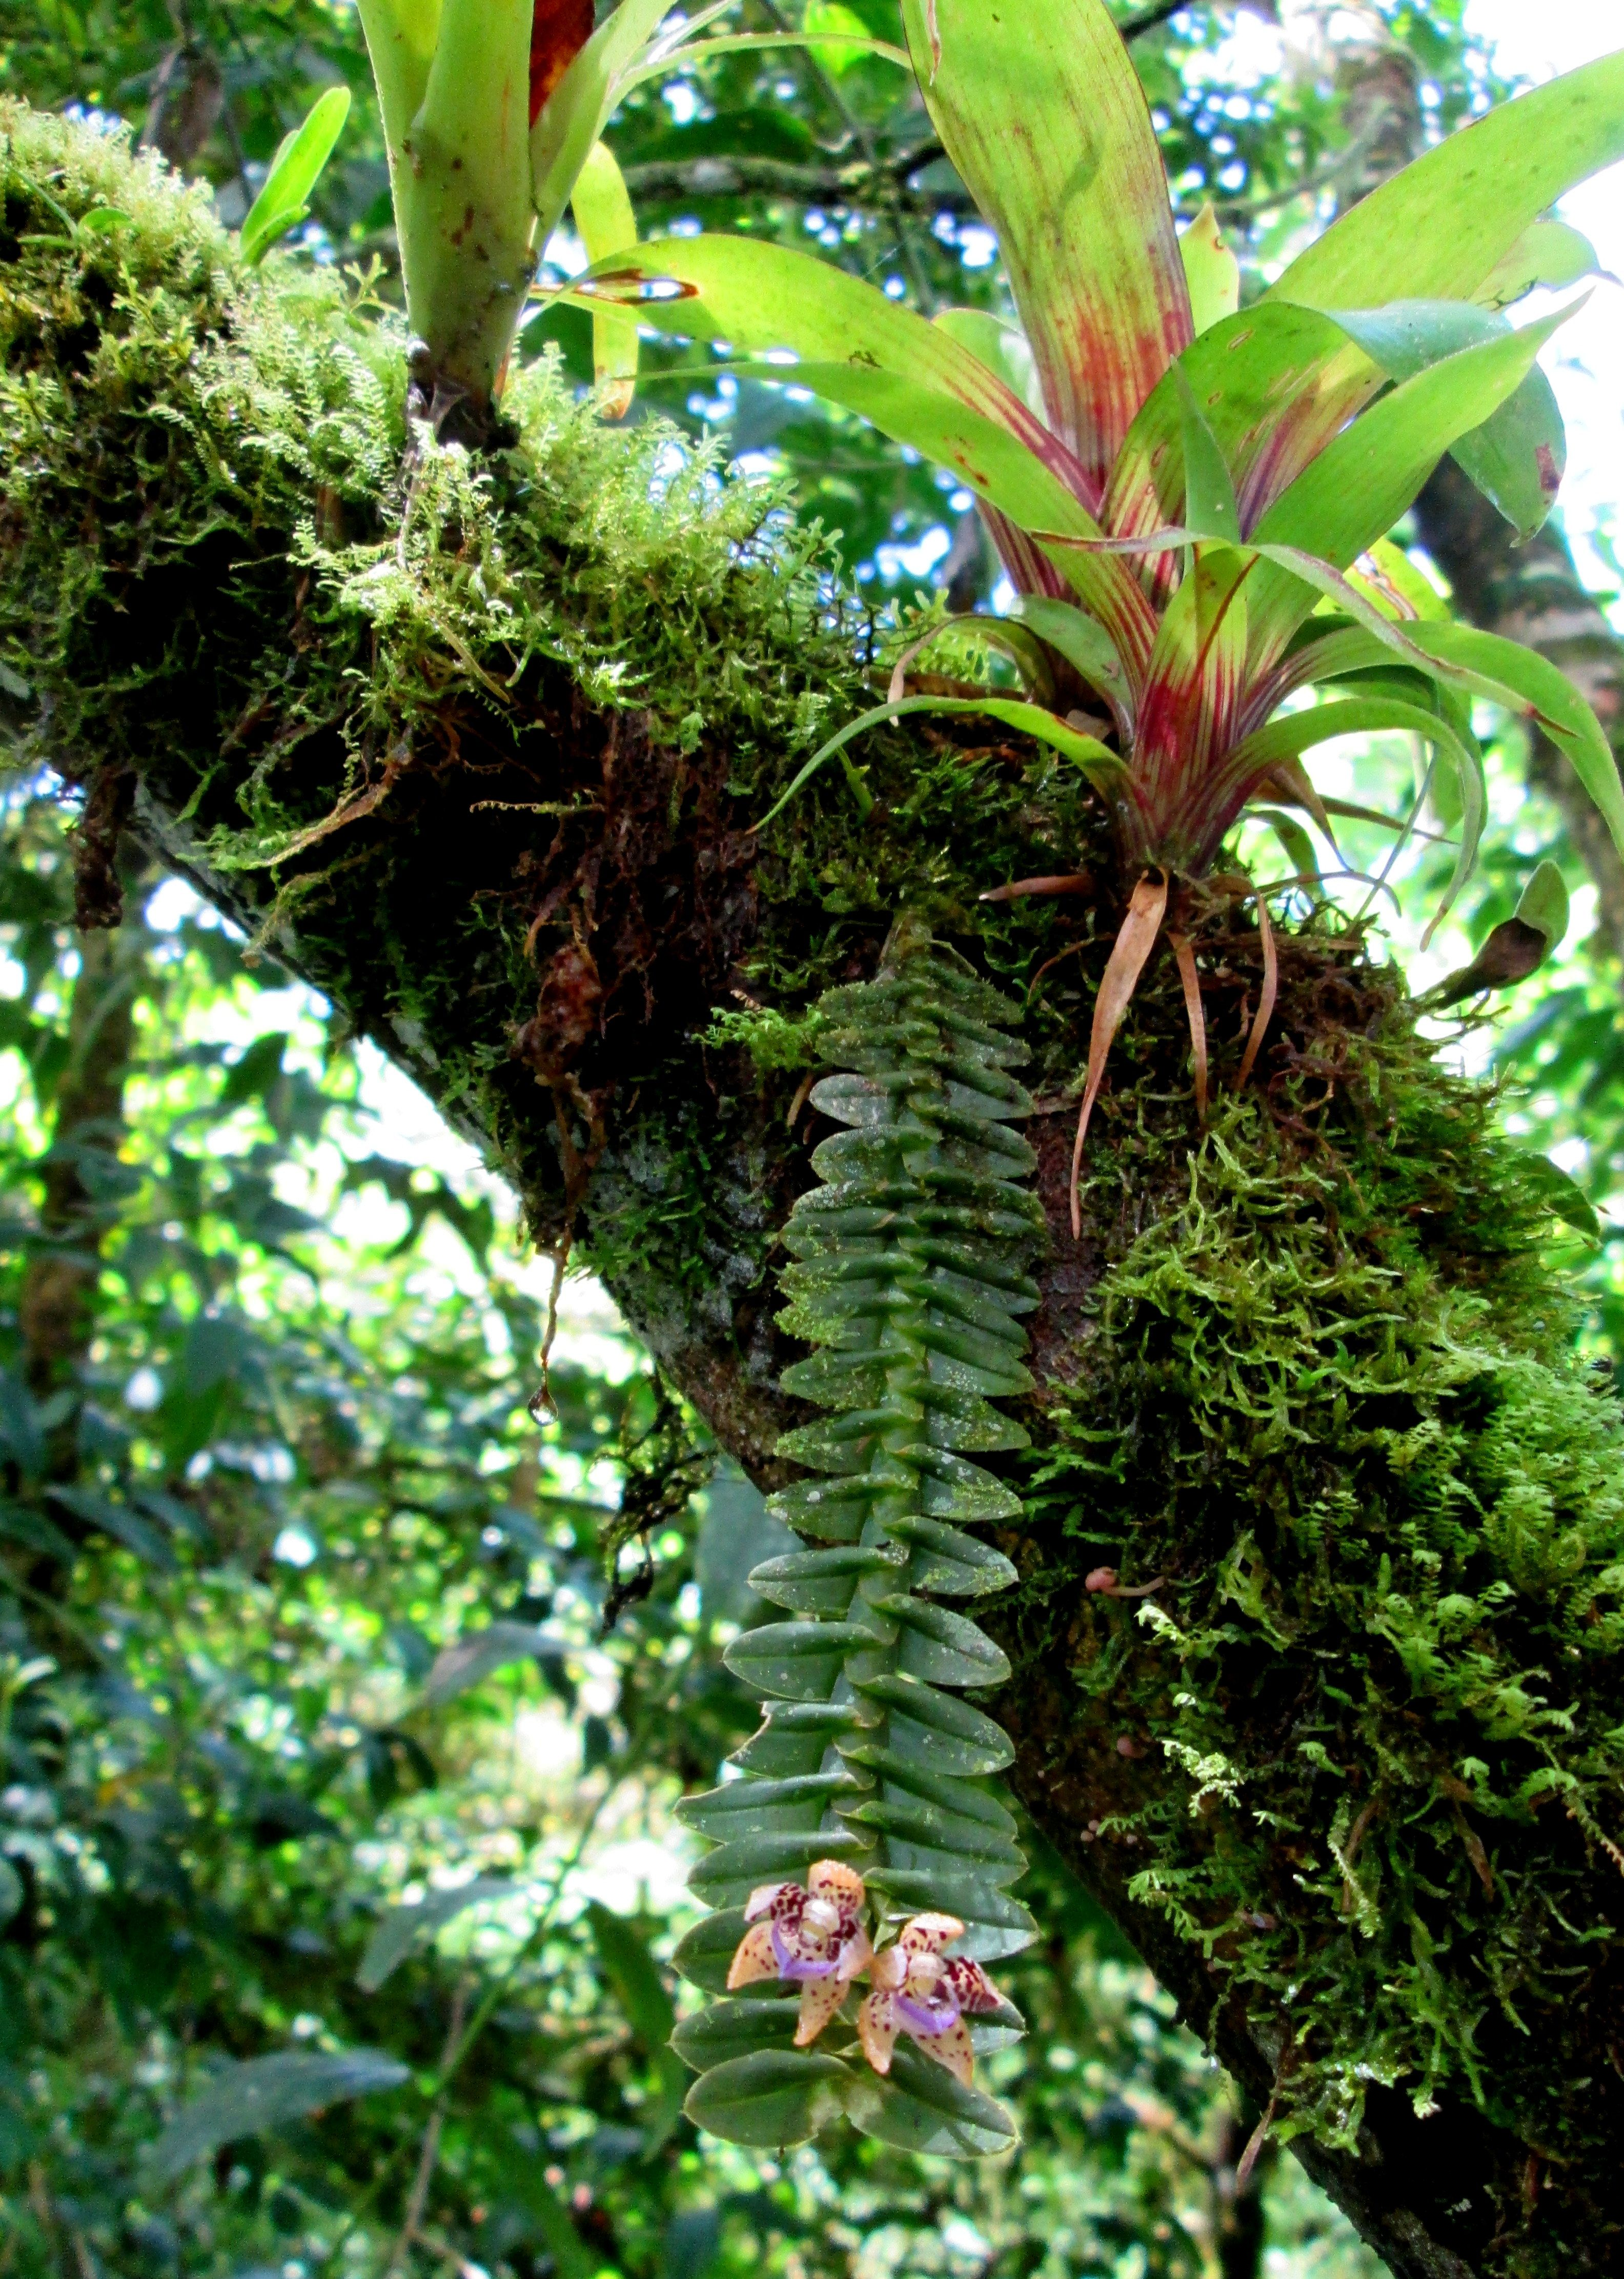 epiphyte and tree relationship